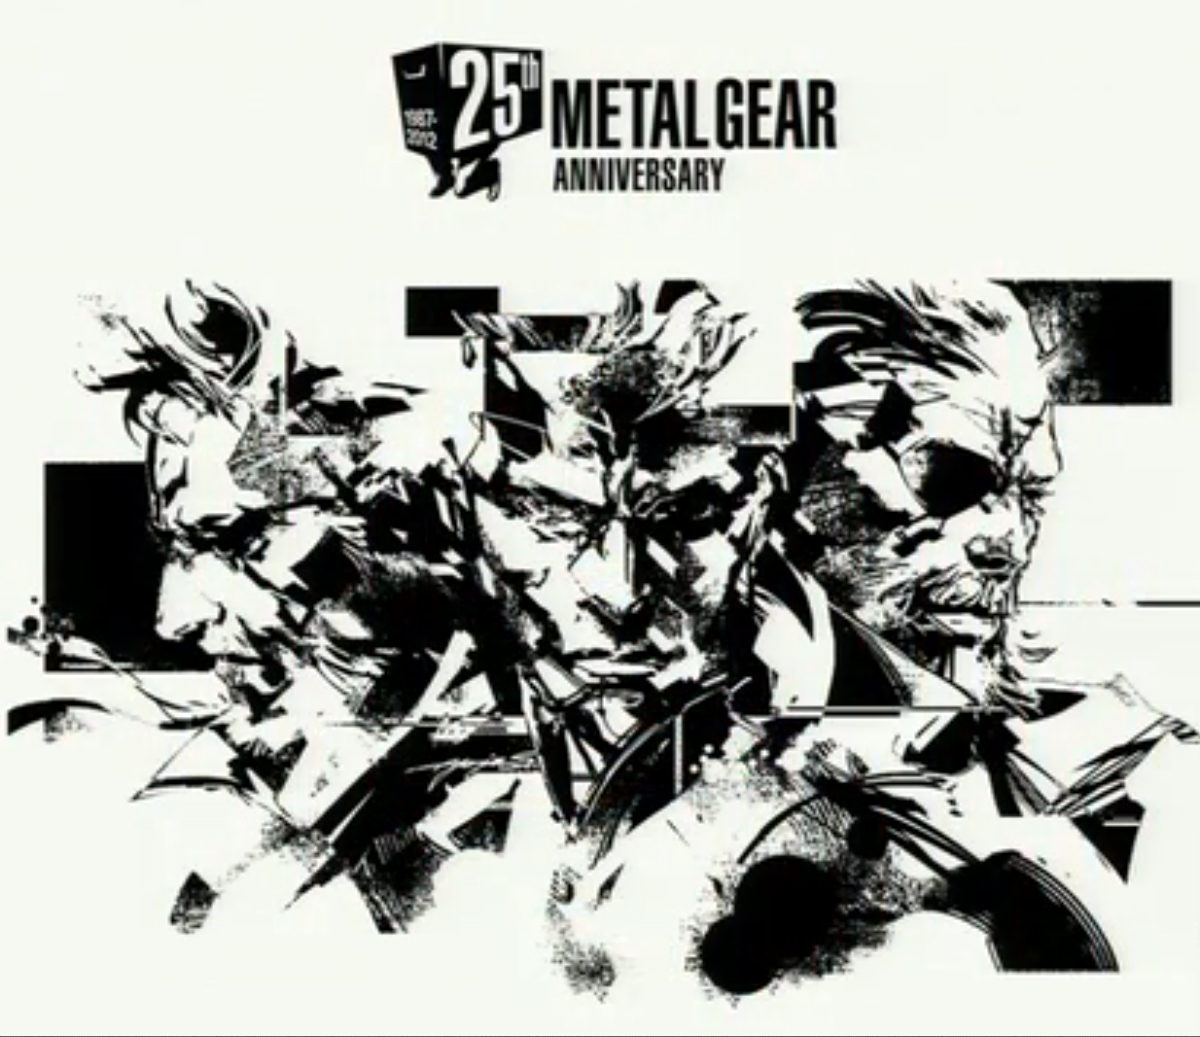 Watch The Complete Metal Gear 25th Anniversary Conference